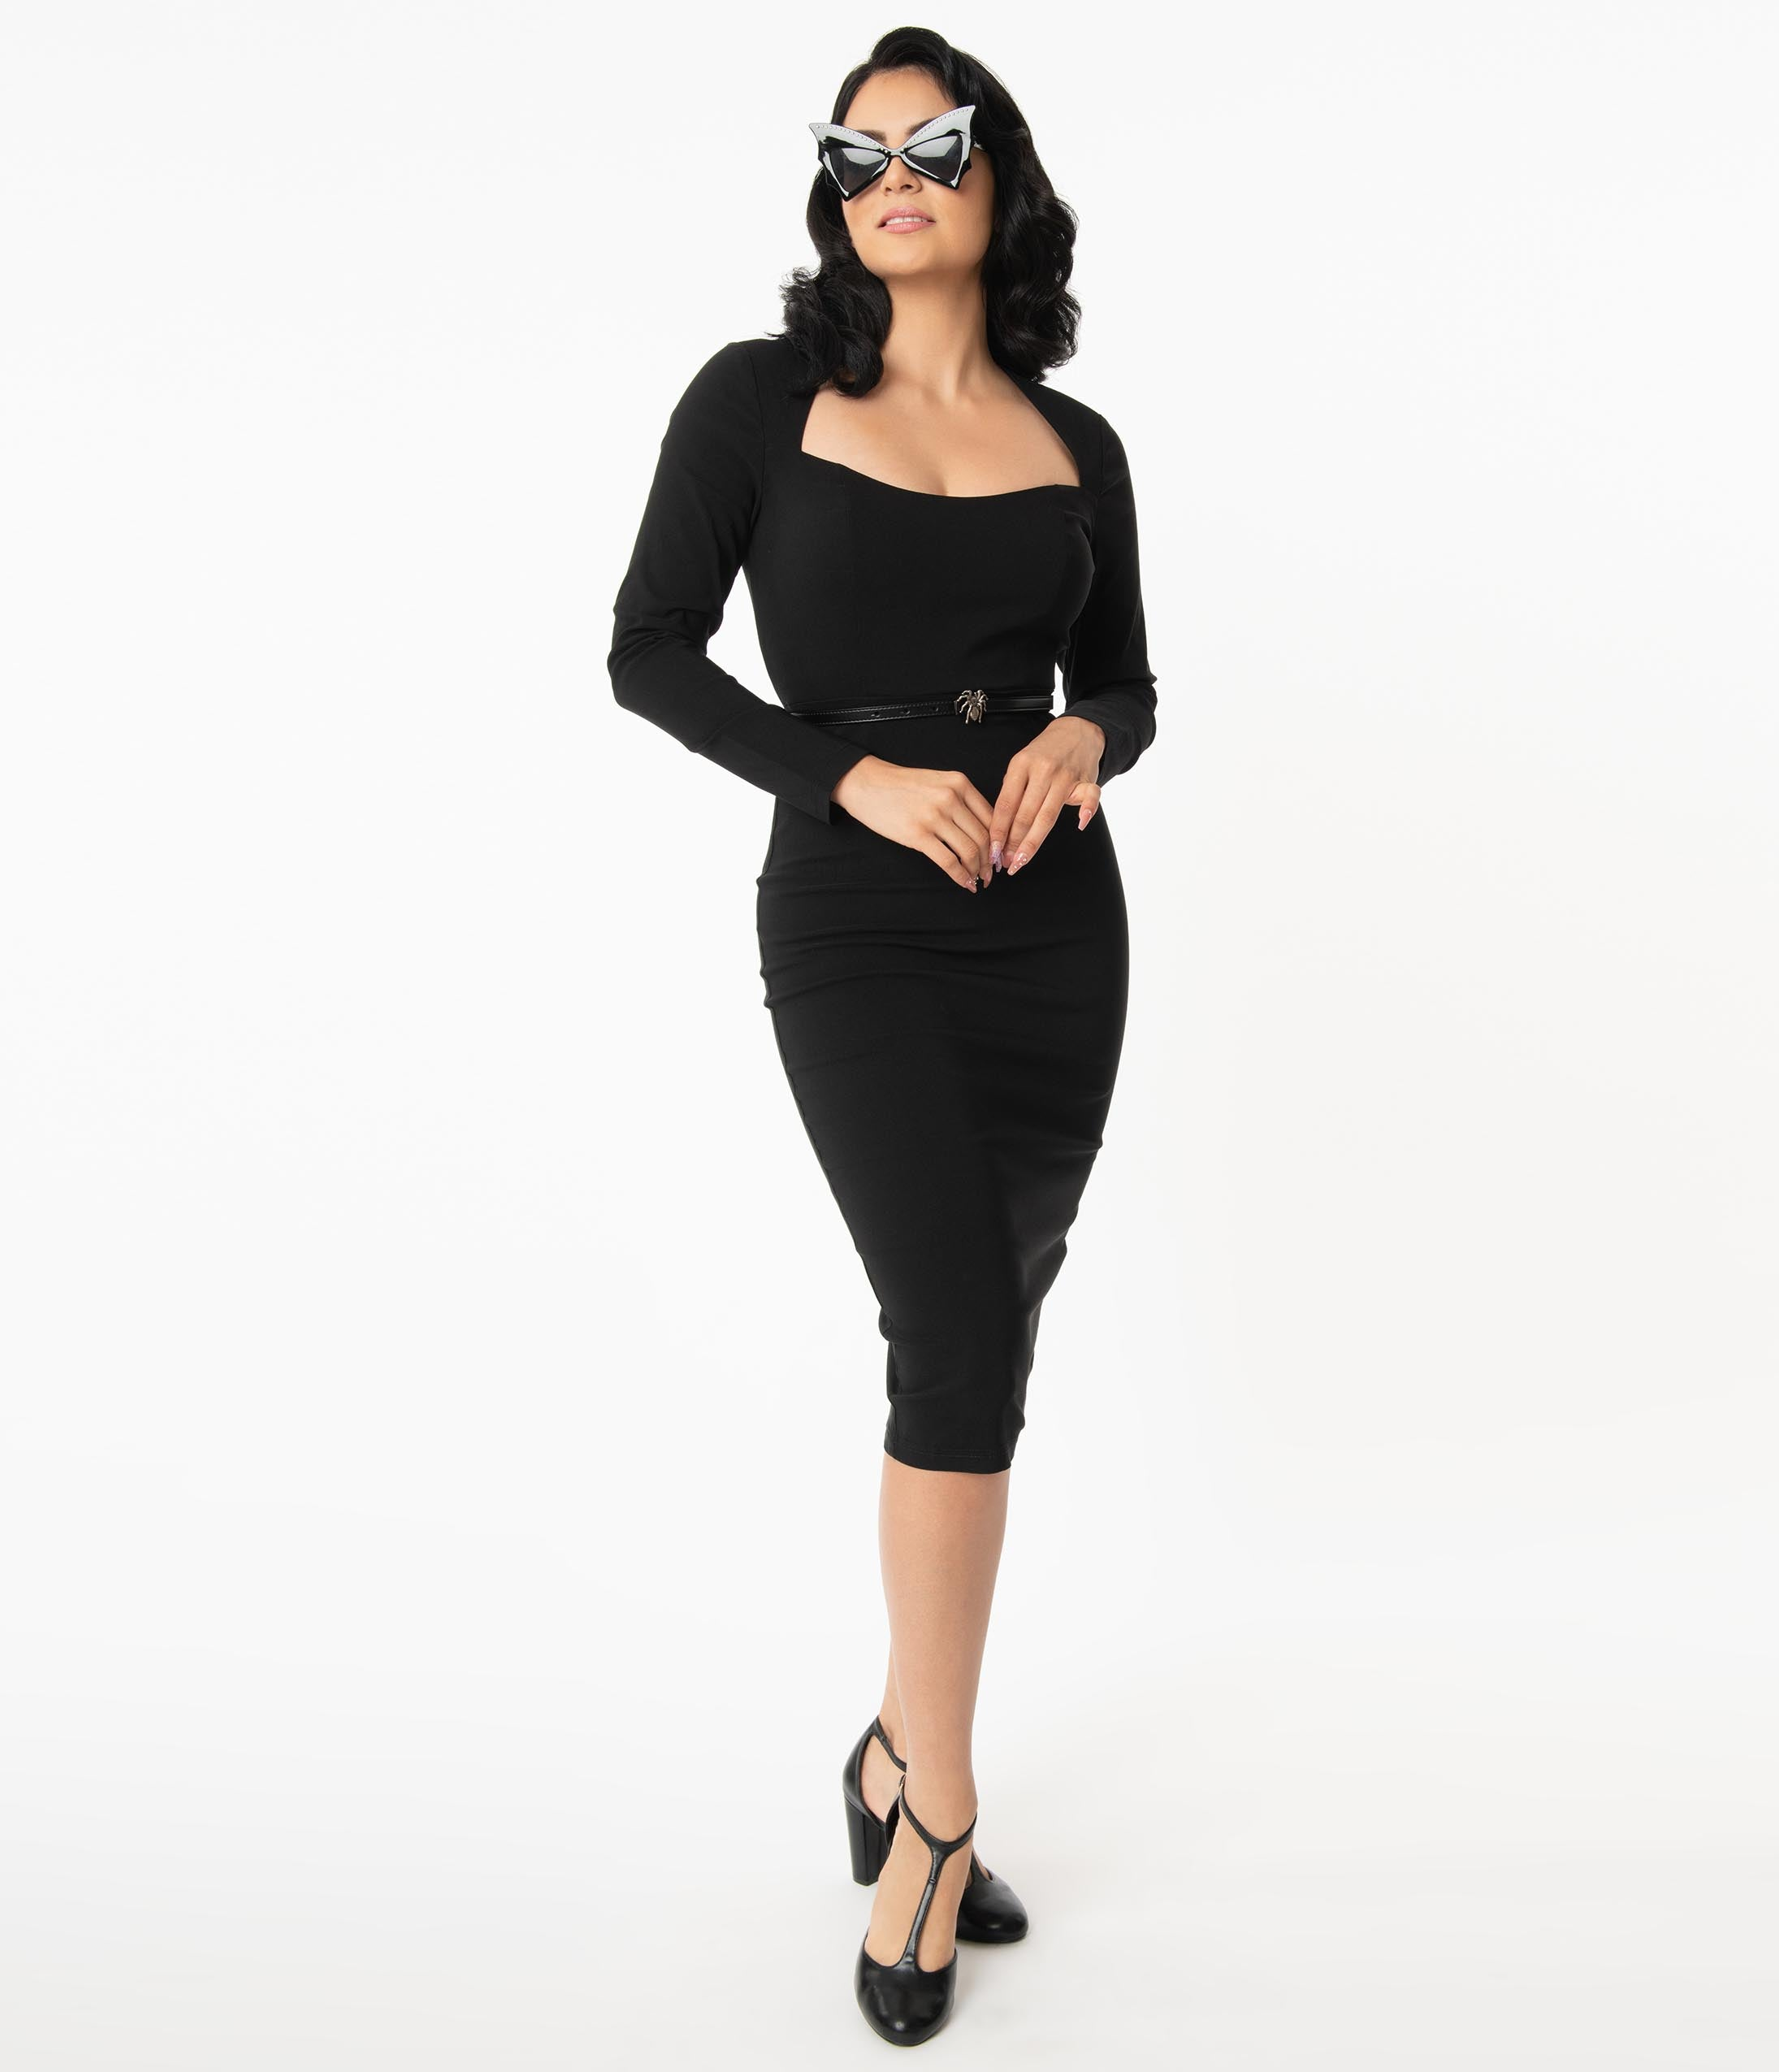 1960s Cocktail, Party, Prom, Evening Dresses Collectif Black Lura Pencil Dress $78.00 AT vintagedancer.com